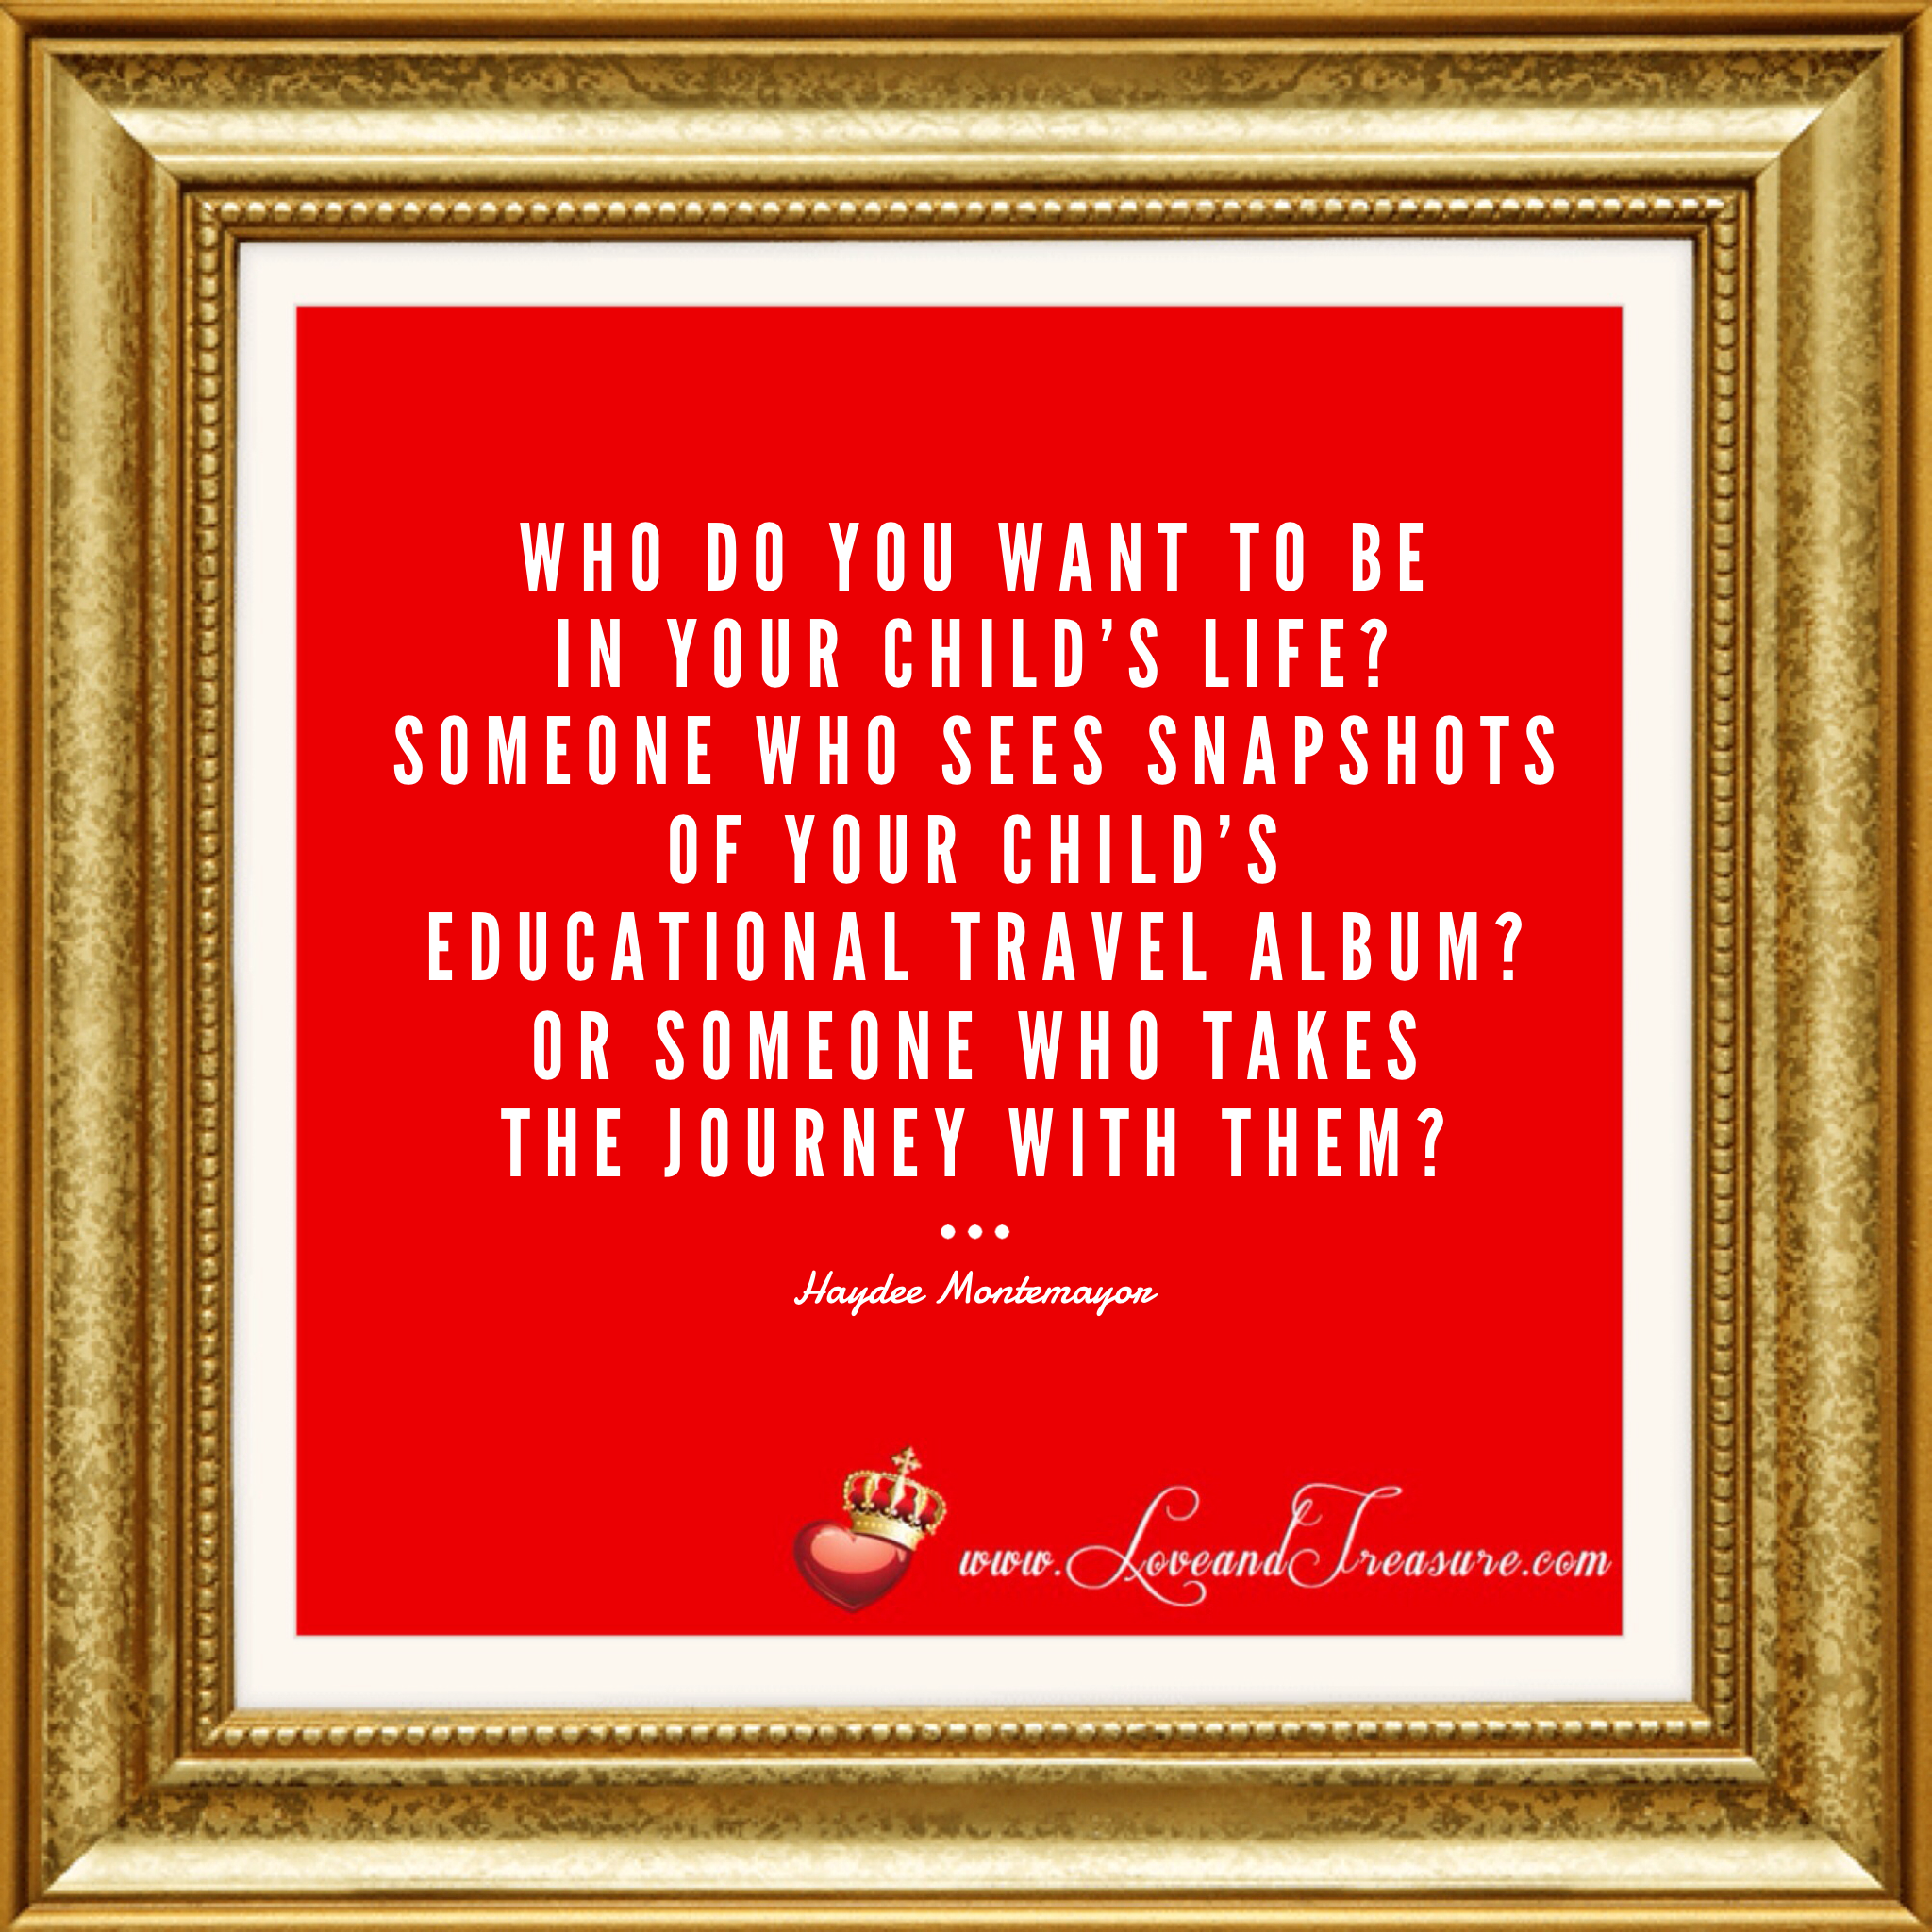 """Who do you want to be in your child's life? Someone who sees snapshots of your child's educational travel album? Or someone who takes the journey with them?"" - Haydee Montemayor from Love and Treasure www.loveandtreasure.com"